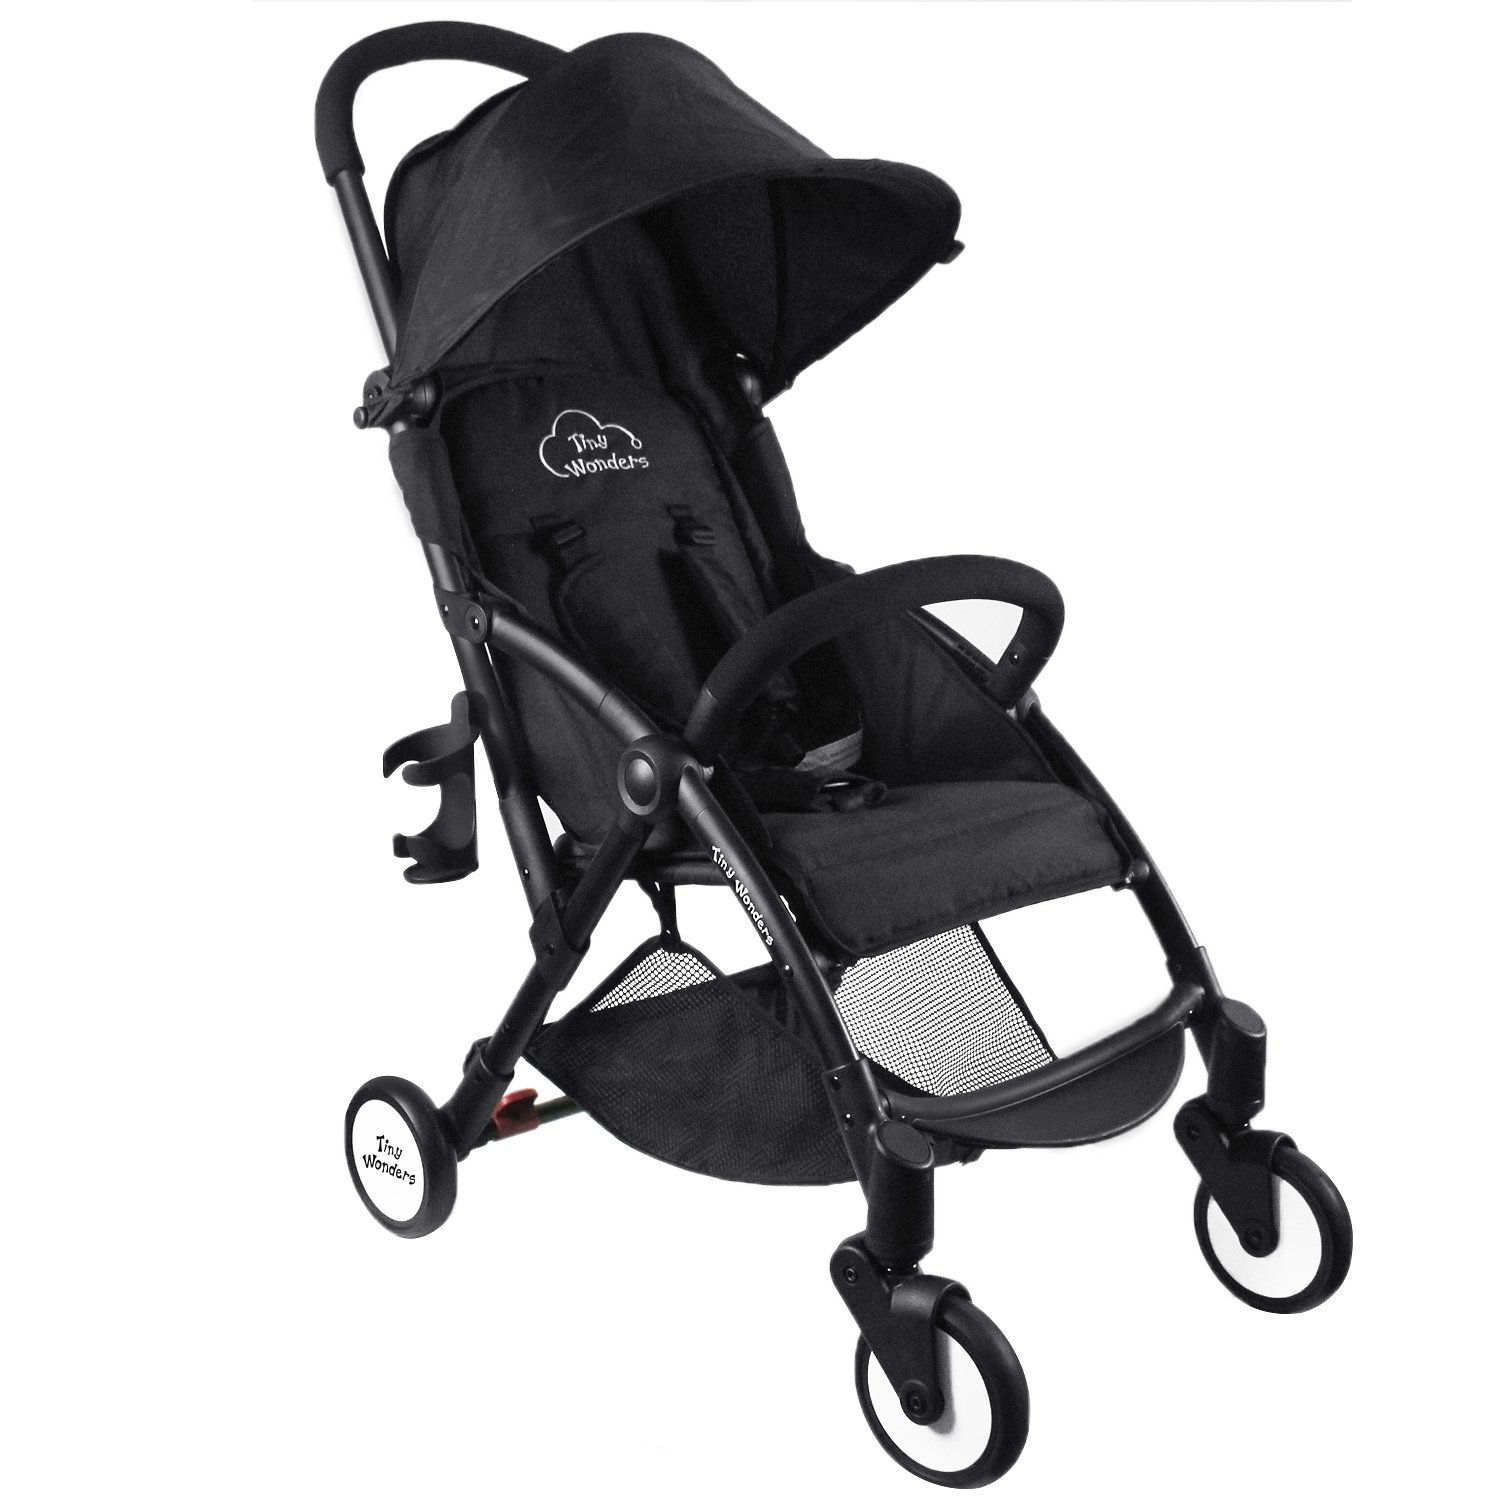 Tiny Wonders Black Lightweight Compact Baby Stroller, Portable Airplane Travel Carry On Strollers, Folding Umbrella Pram for 3, 6, 9 Month, 1, 2 Year Old Newborn, Infants, Toddlers, Boys, Girls